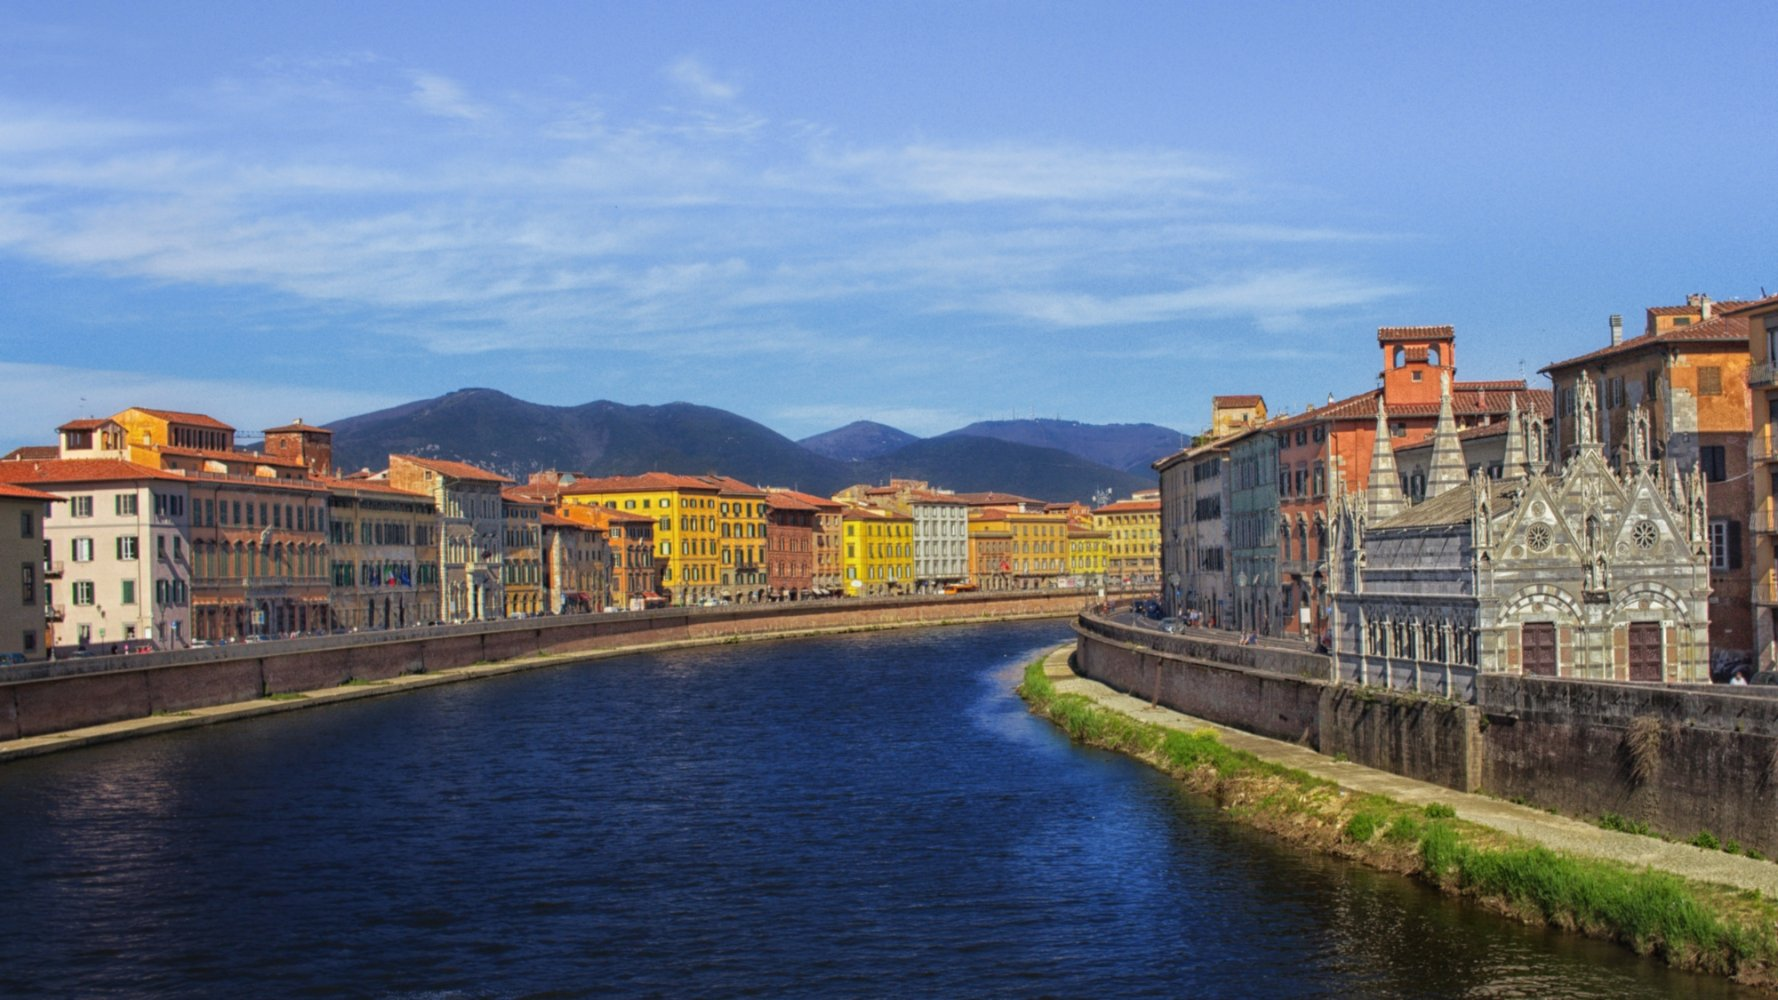 River Arno in Pisa and the Santa Maria della Spina Church